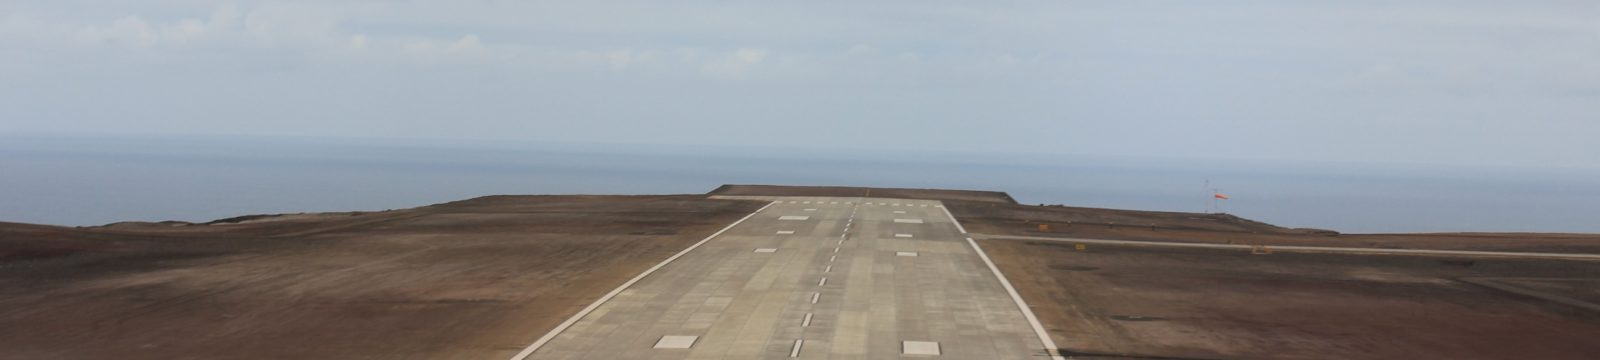 Photo of the runway at St Helena Airport looking south